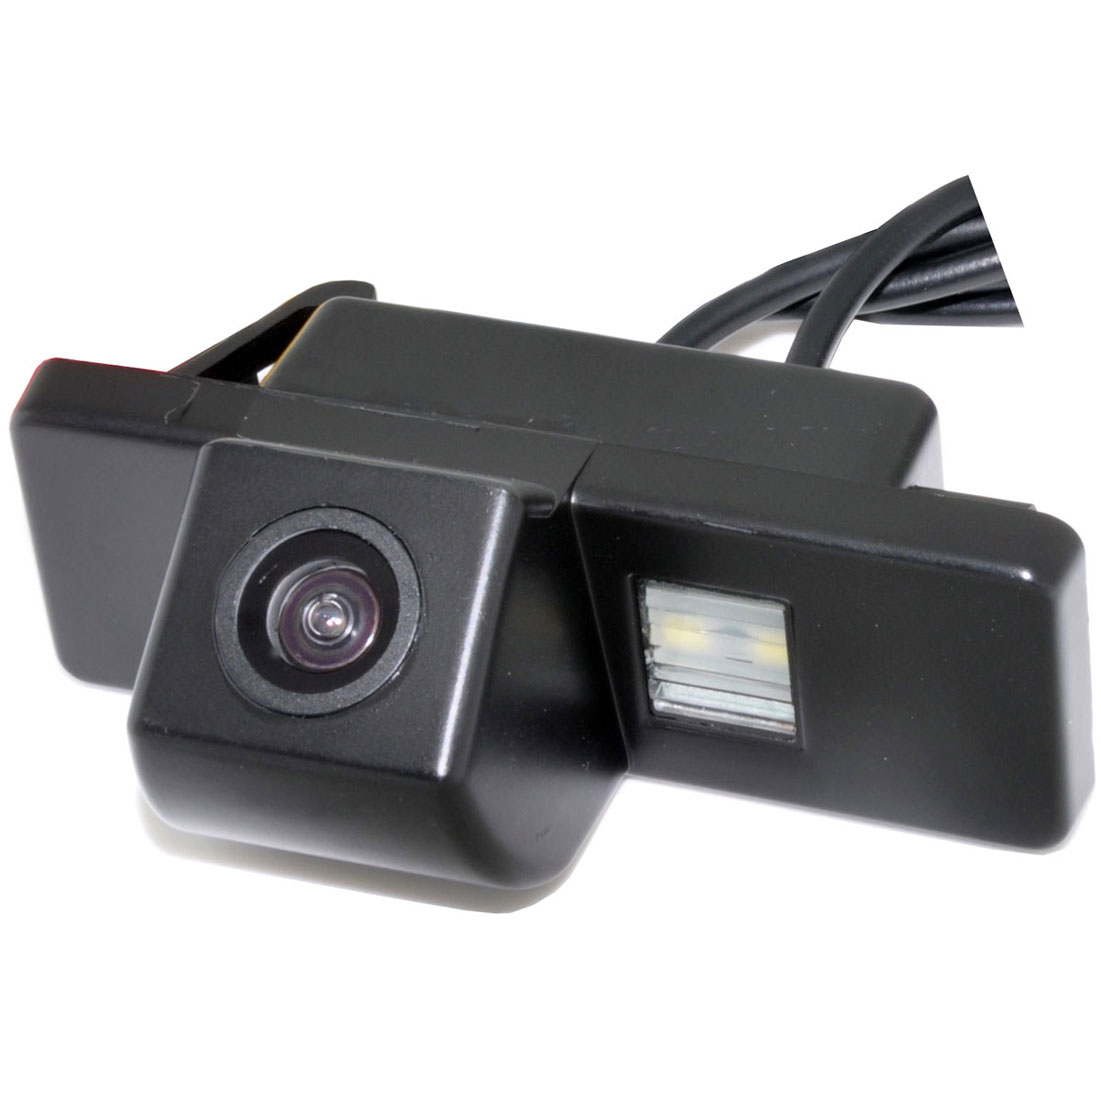 HD CCD Car Rear View Reverse CAMERA For Nissan QASHQAI X-TRAIL Geniss Citroen C4 C5 C-Triomphe Peugeot 307cc Pathfinder Dualis